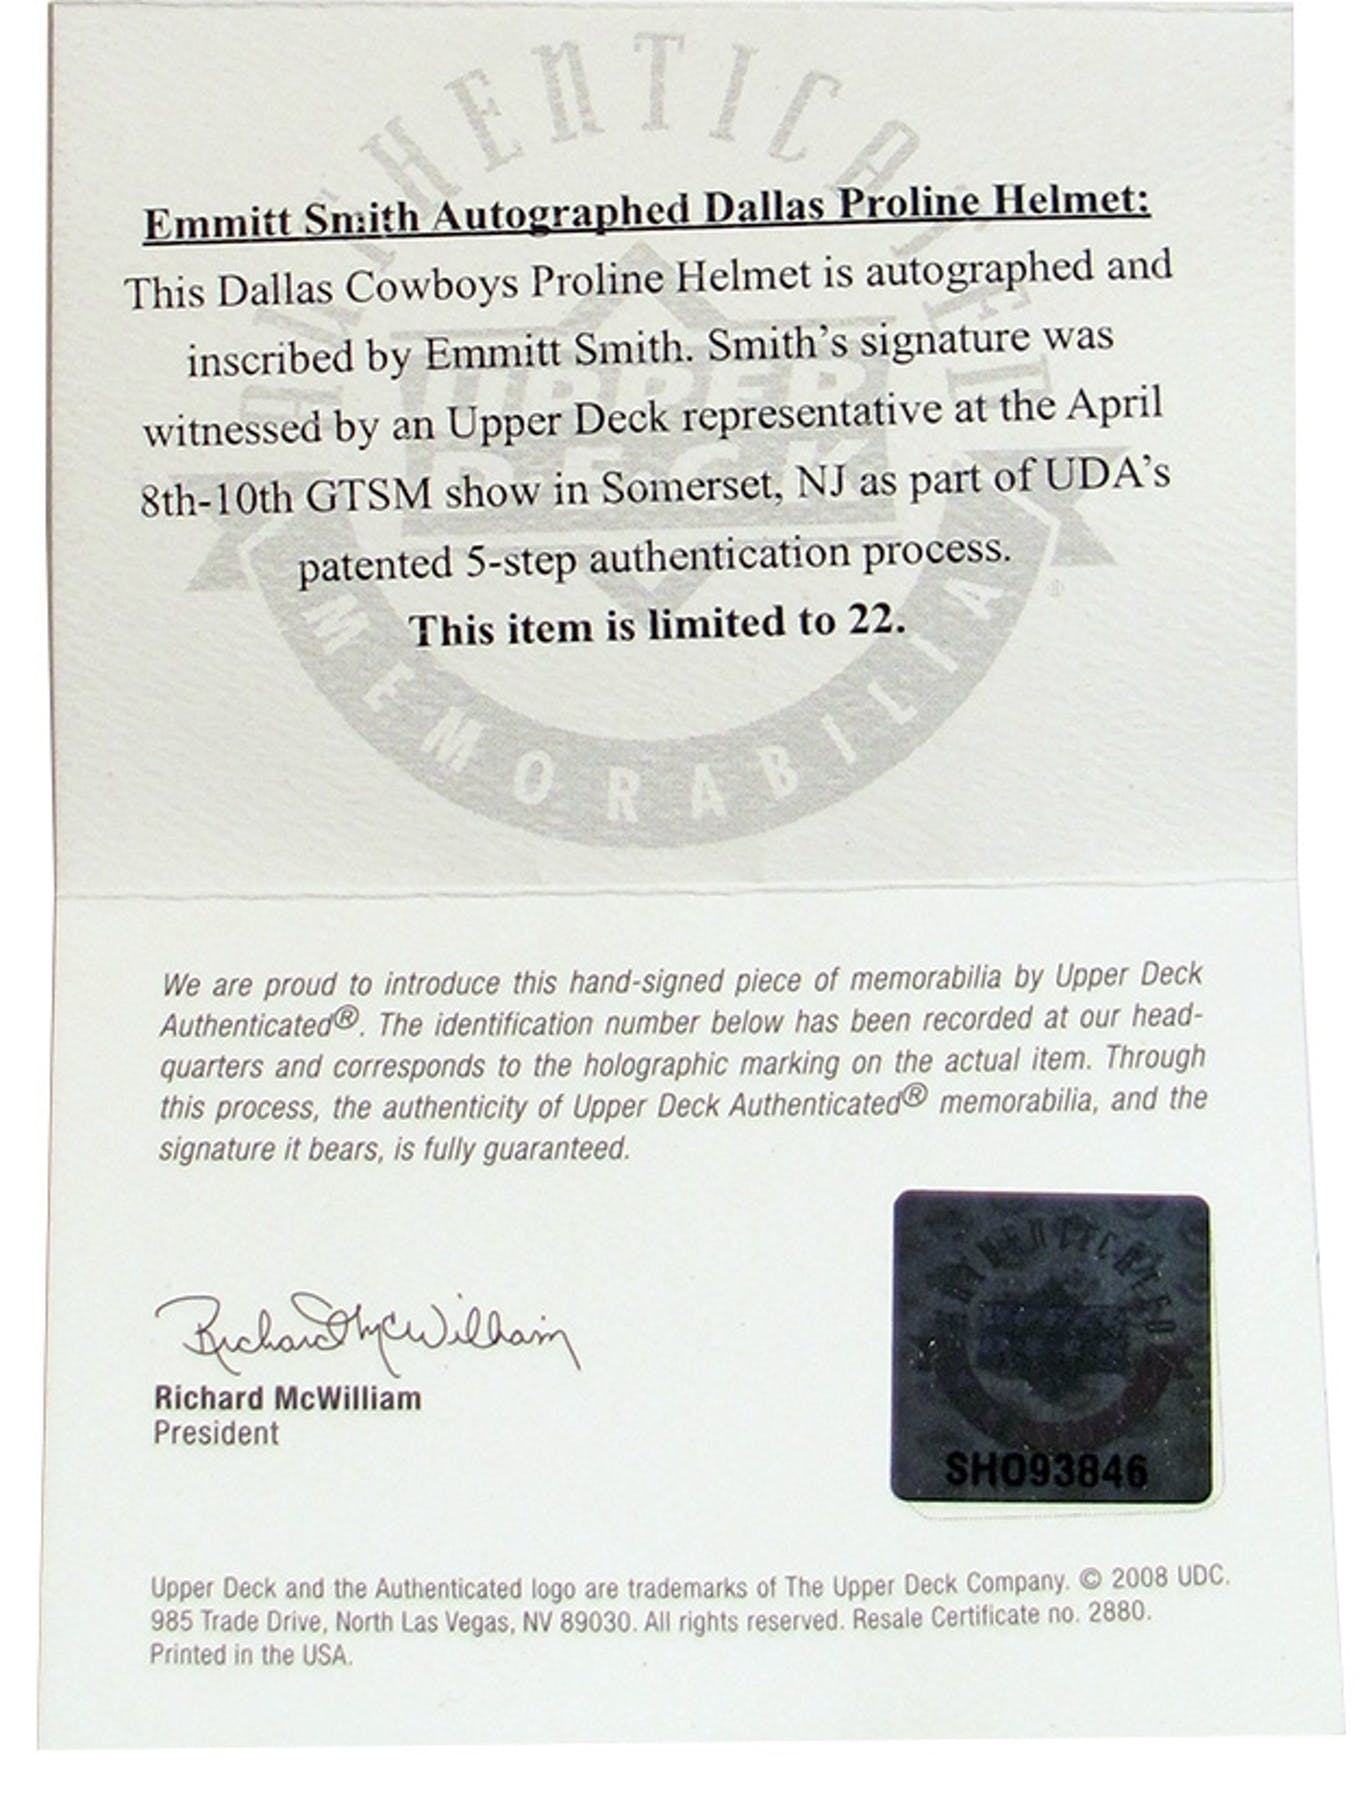 Awesome pictures of resale certificate nj business cards and resale certificate nj image source oregonswildharvest emmitt smith autographed dallas cowboys full size on field helmet xflitez Image collections